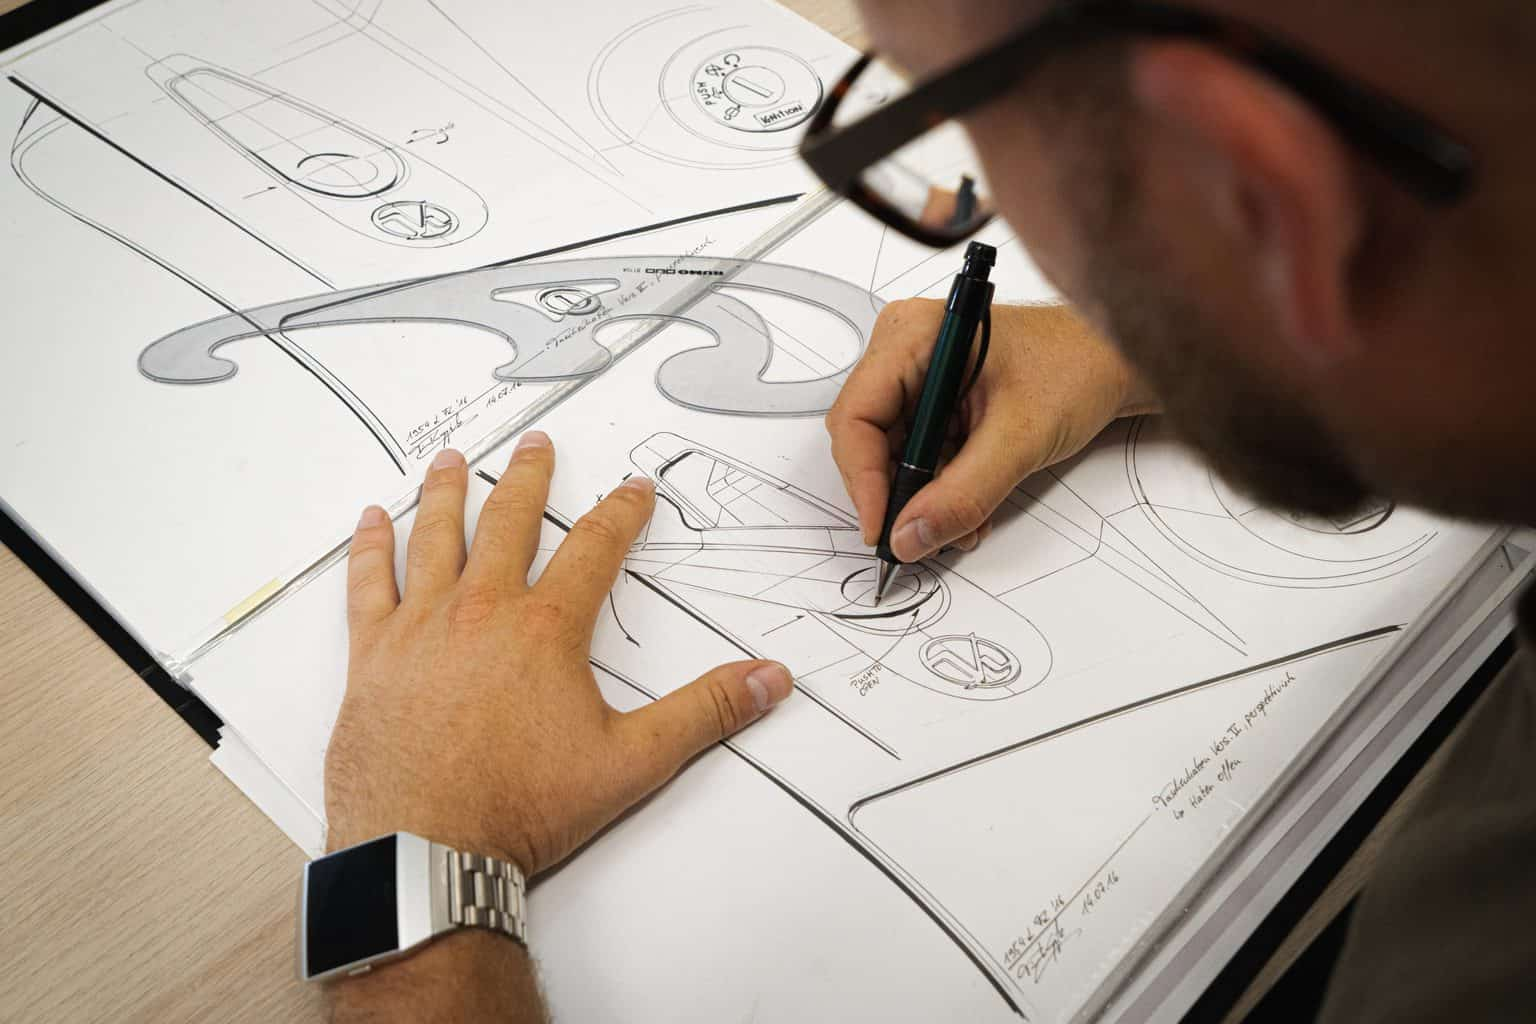 Project Designer & Brand Implementation, Anywhere in Americas